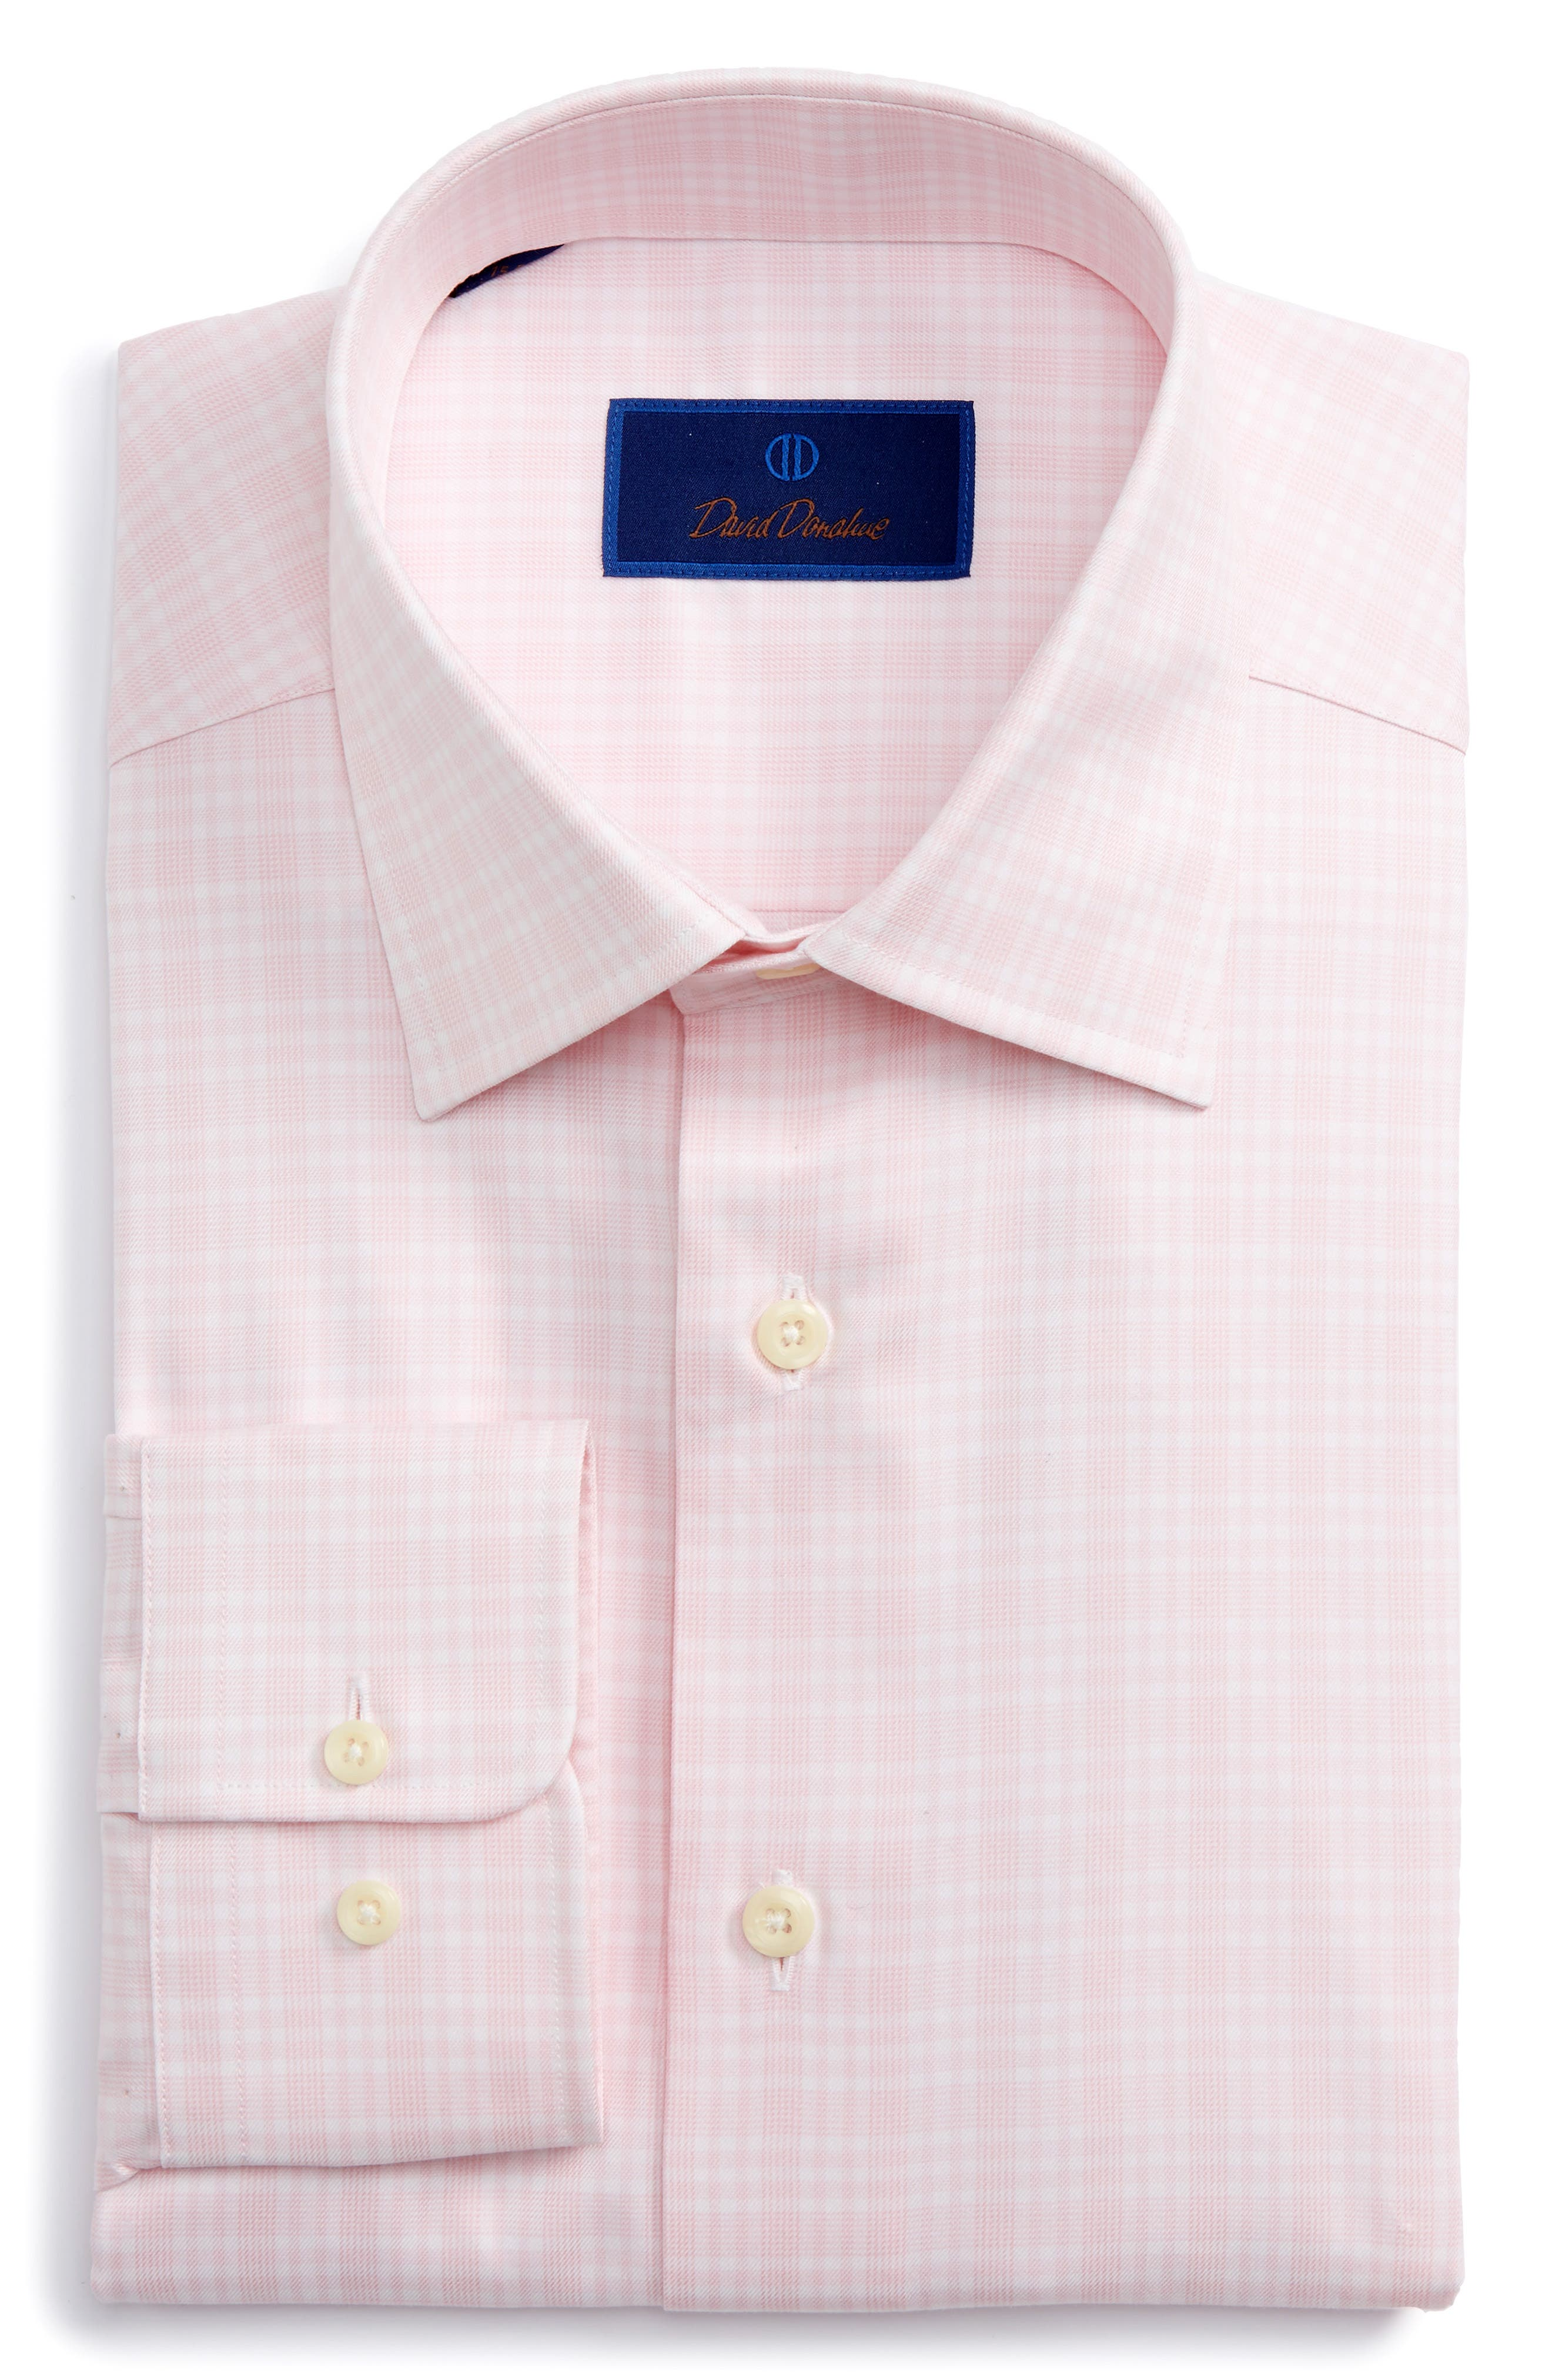 Main Image - David Donahue Regular Fit Plaid Dress Shirt